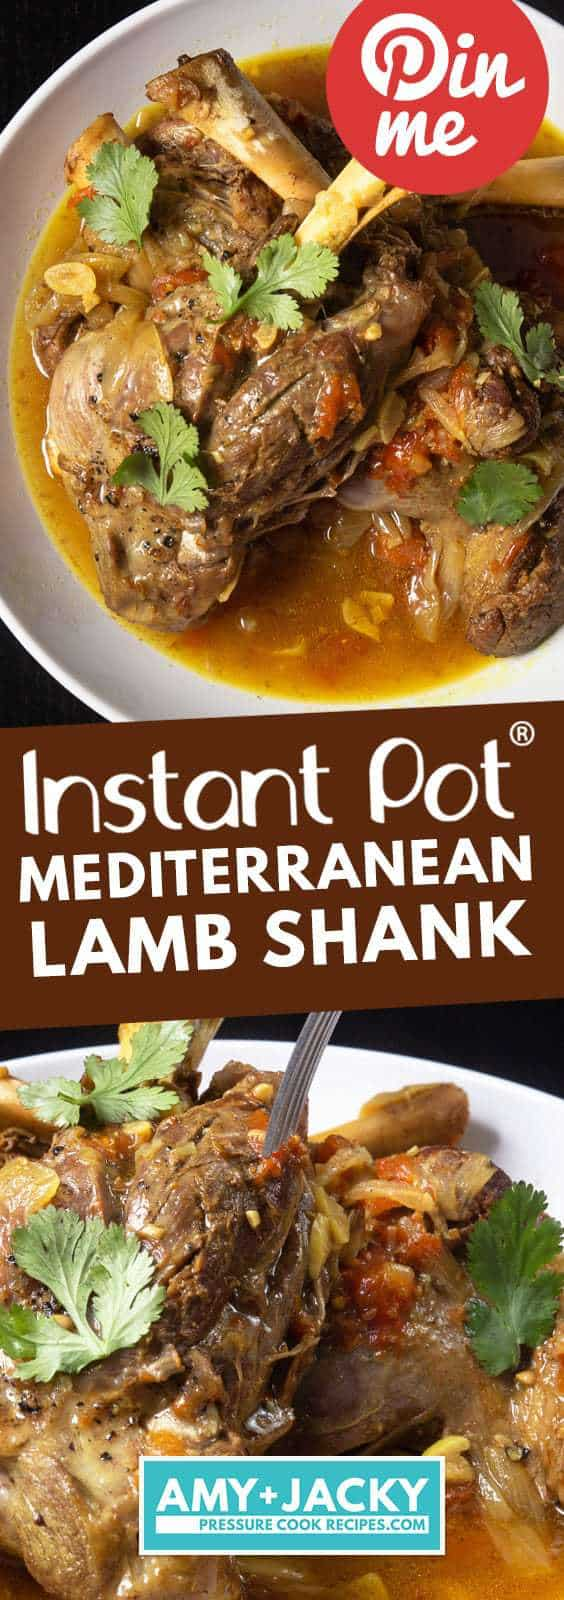 Instant Pot Lamb Shank | Pressure Cooker Lamb Shanks | How to cook lamb shanks | Lamb Shank Recipe | Instant Pot Lamb Recipes | Instant Pot Mediterranean Recipes | Healthy Instant Pot Recipes #recipes #instantpot #lamb #easy #healthy